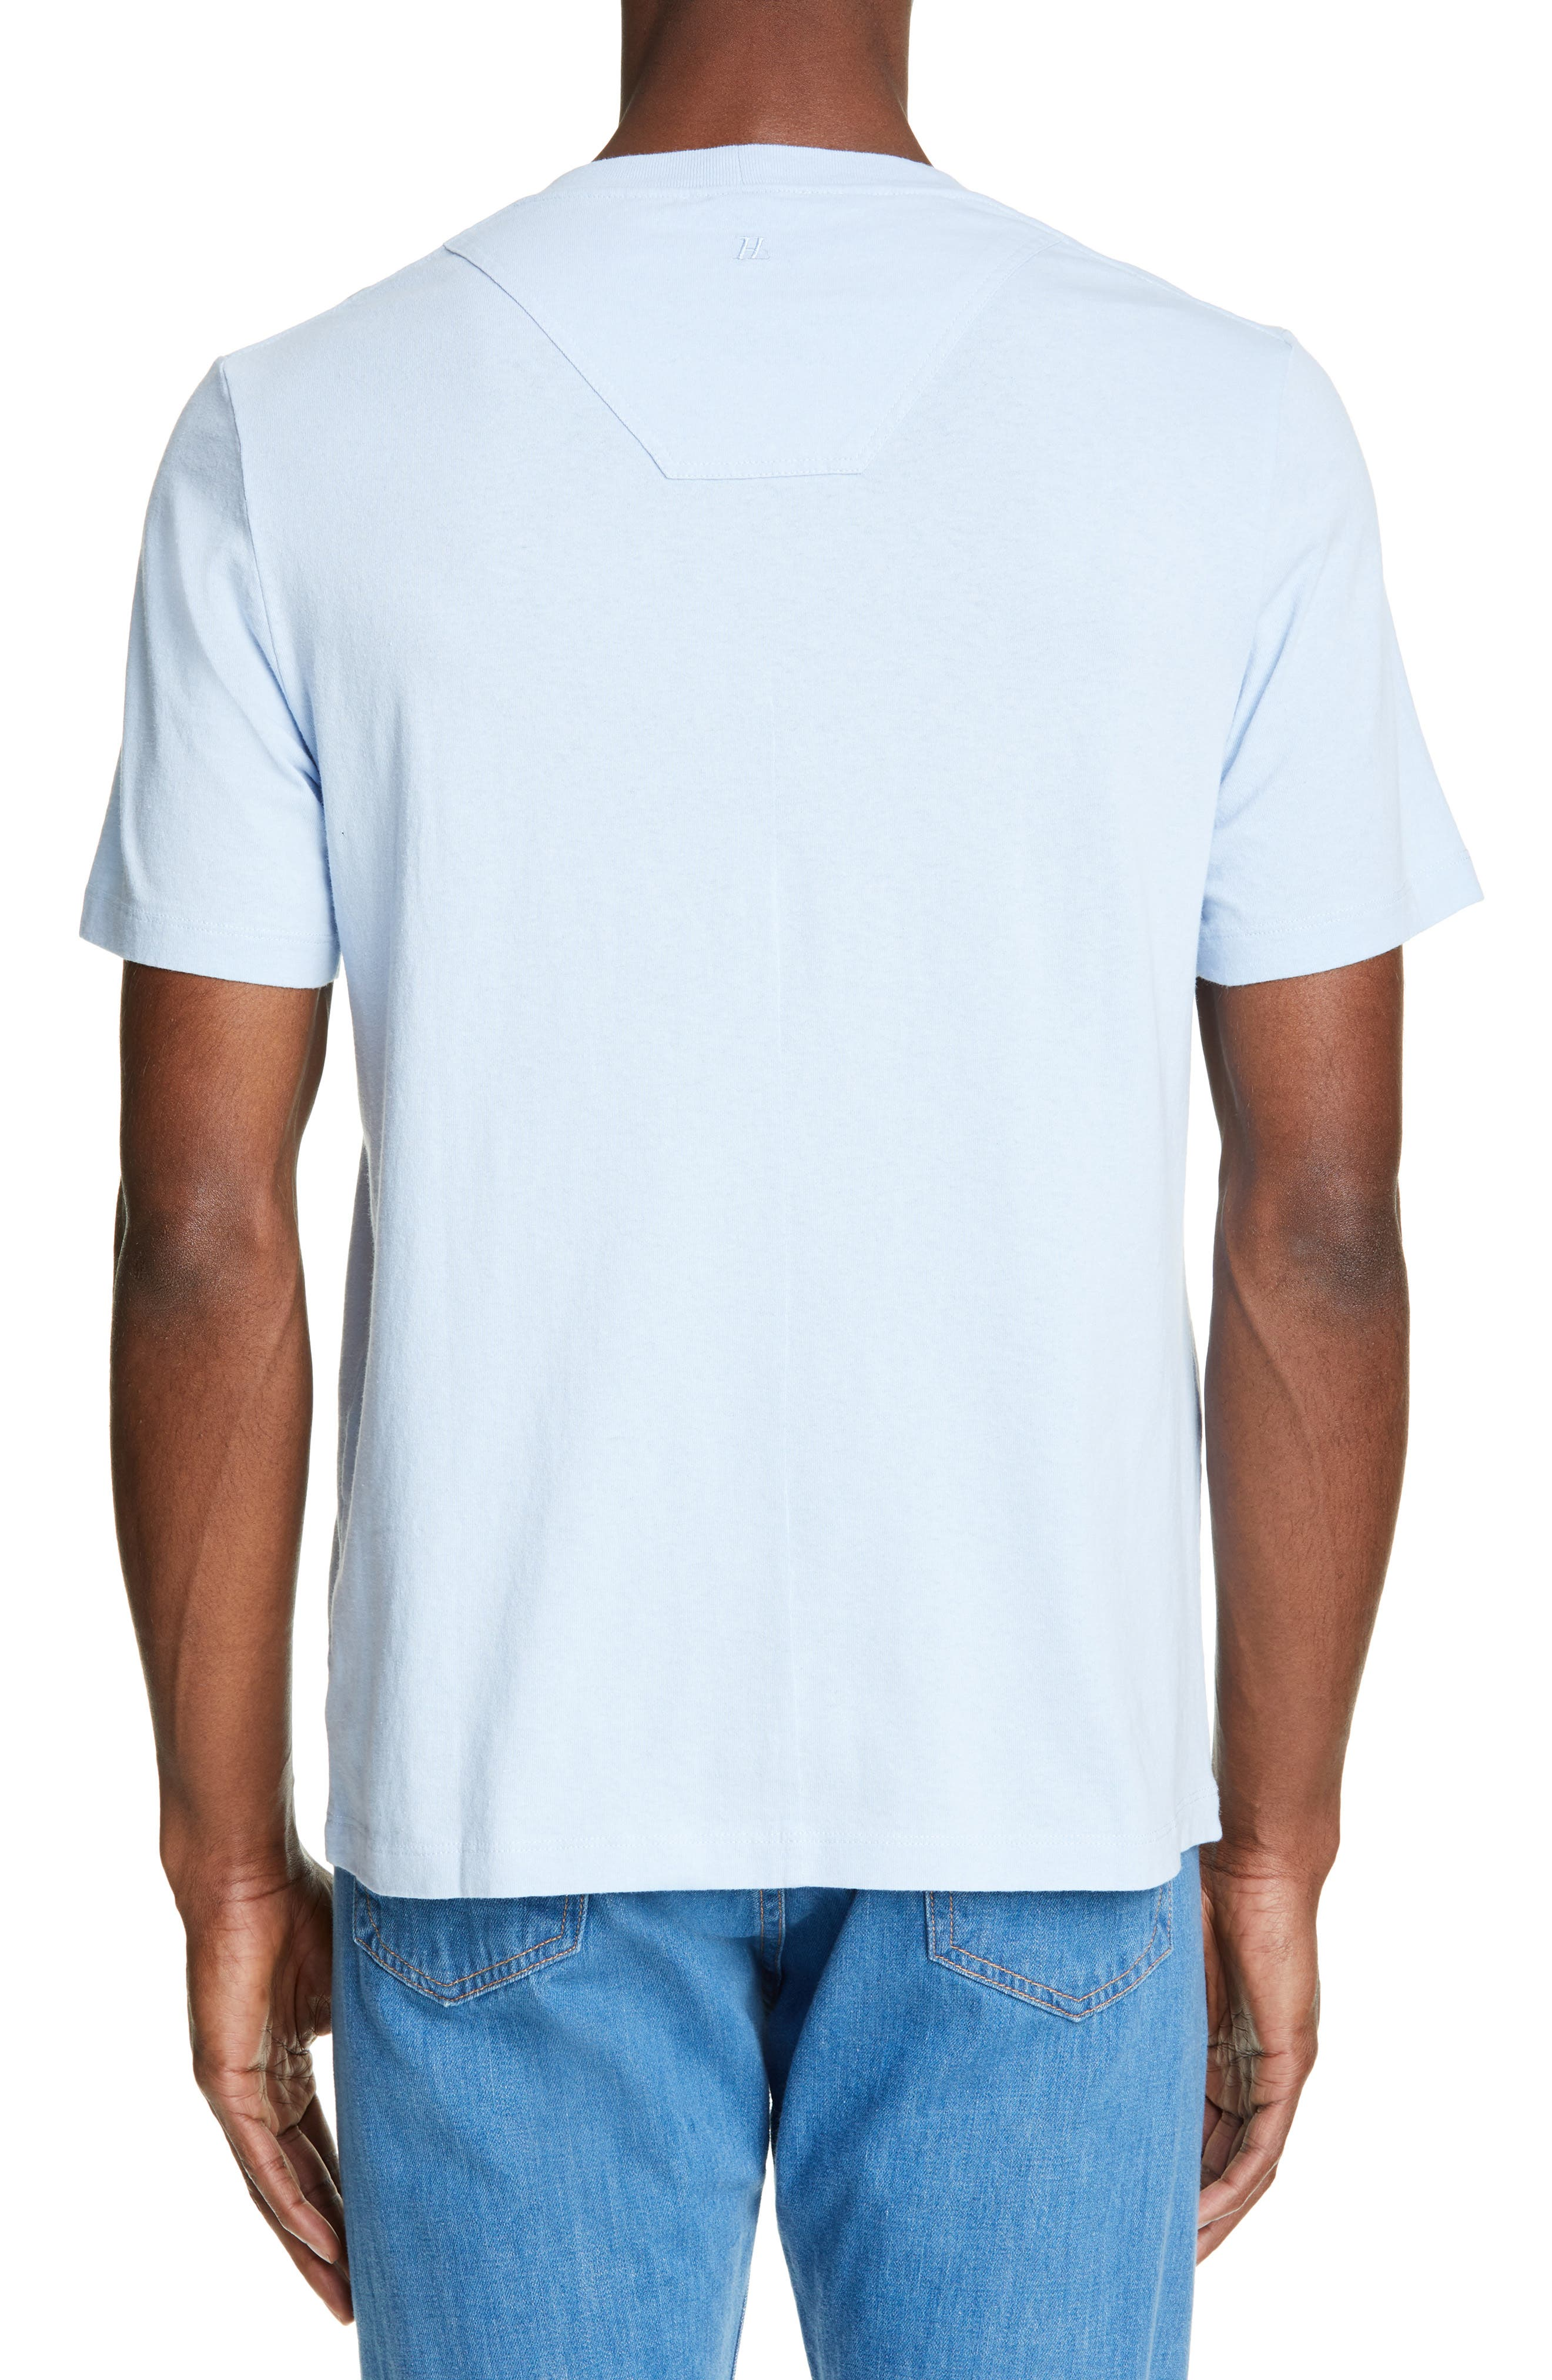 HELMUT LANG, Aviator T-Shirt, Alternate thumbnail 2, color, SKY